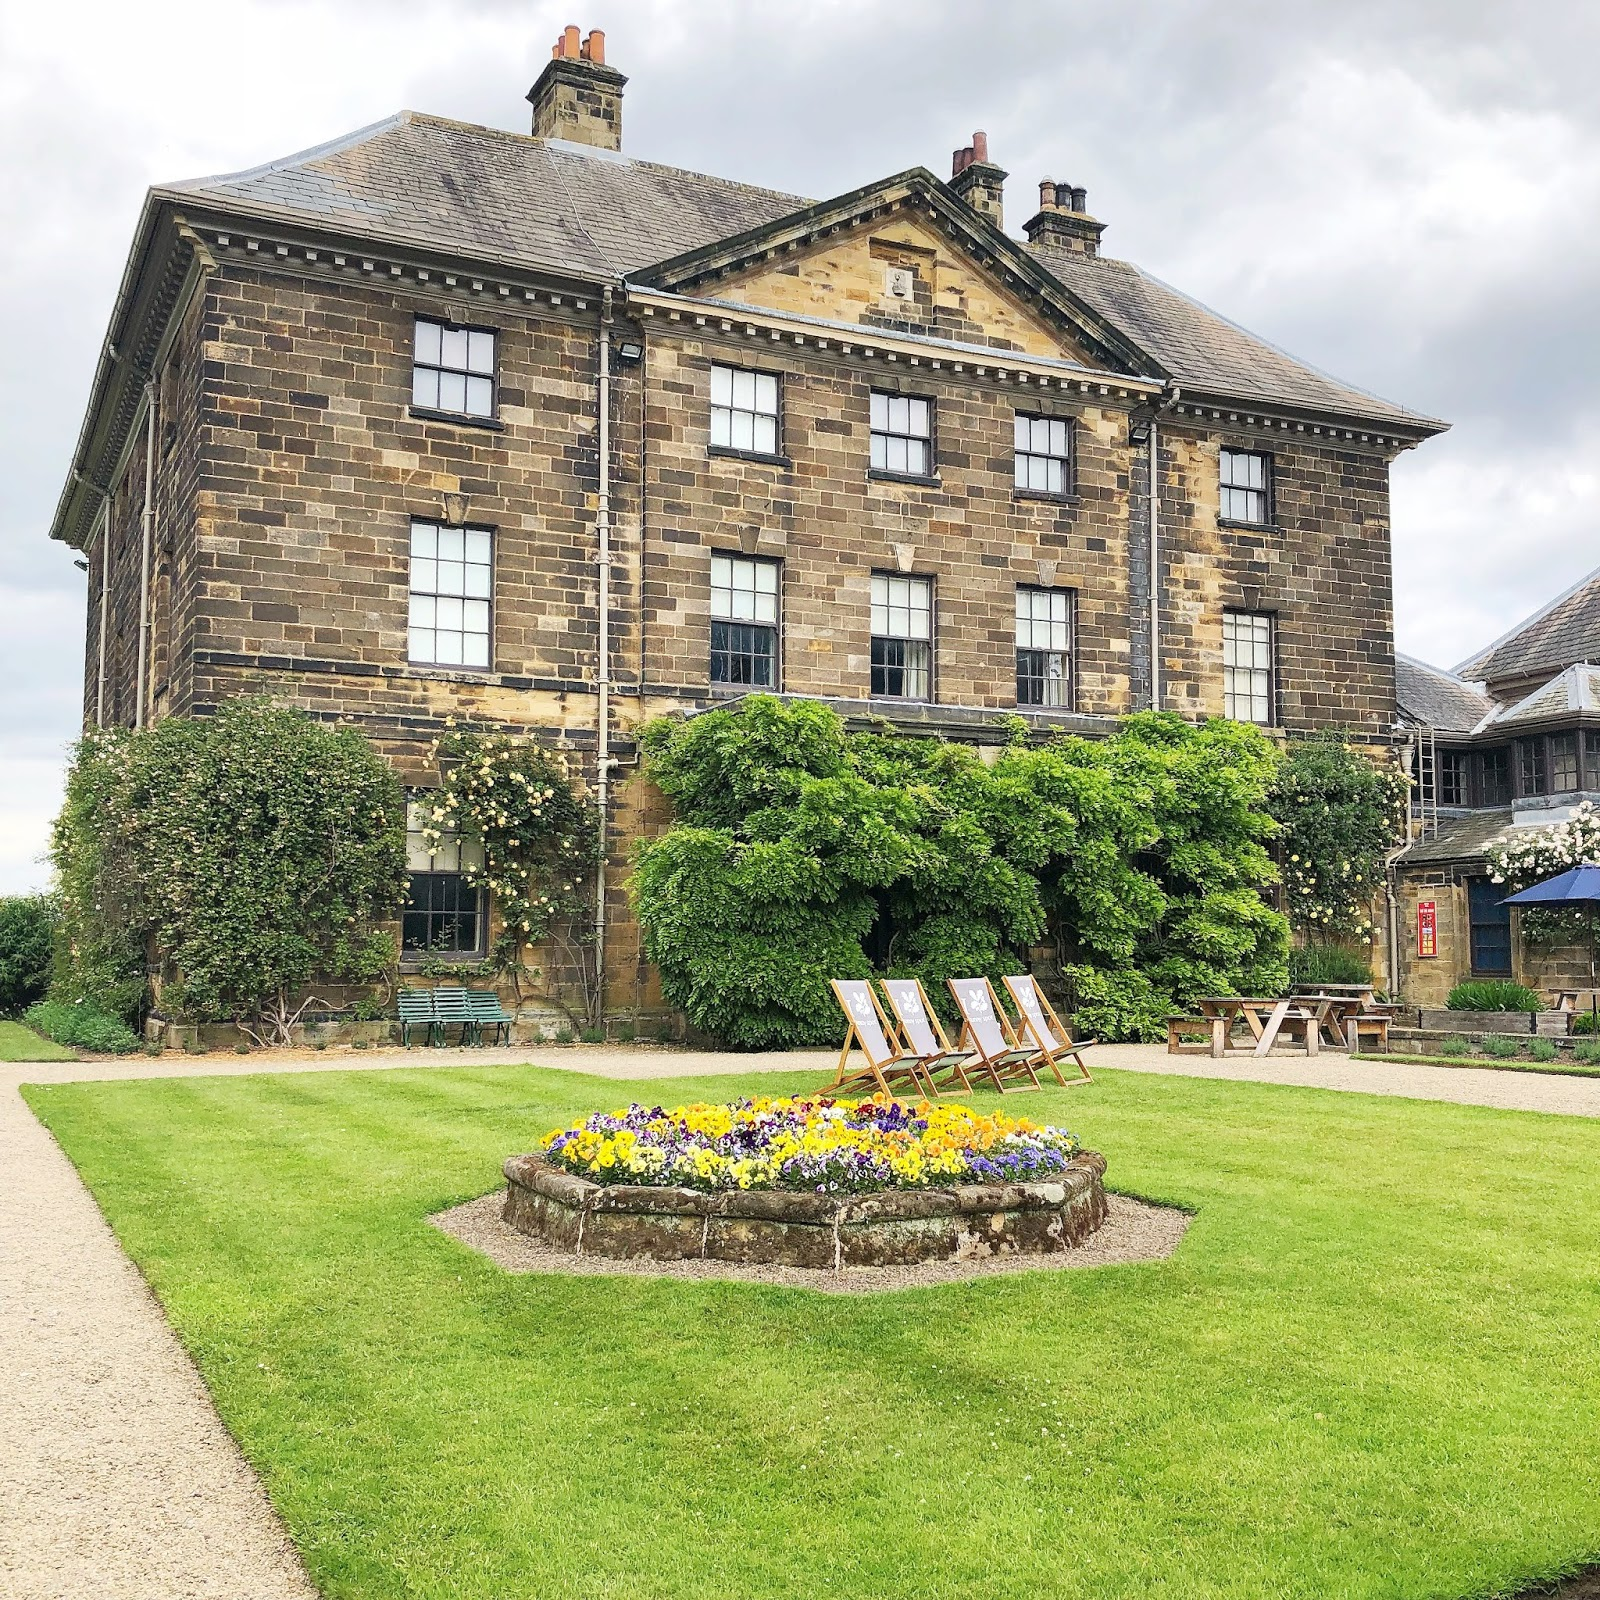 My June Days - Ormesby Hall